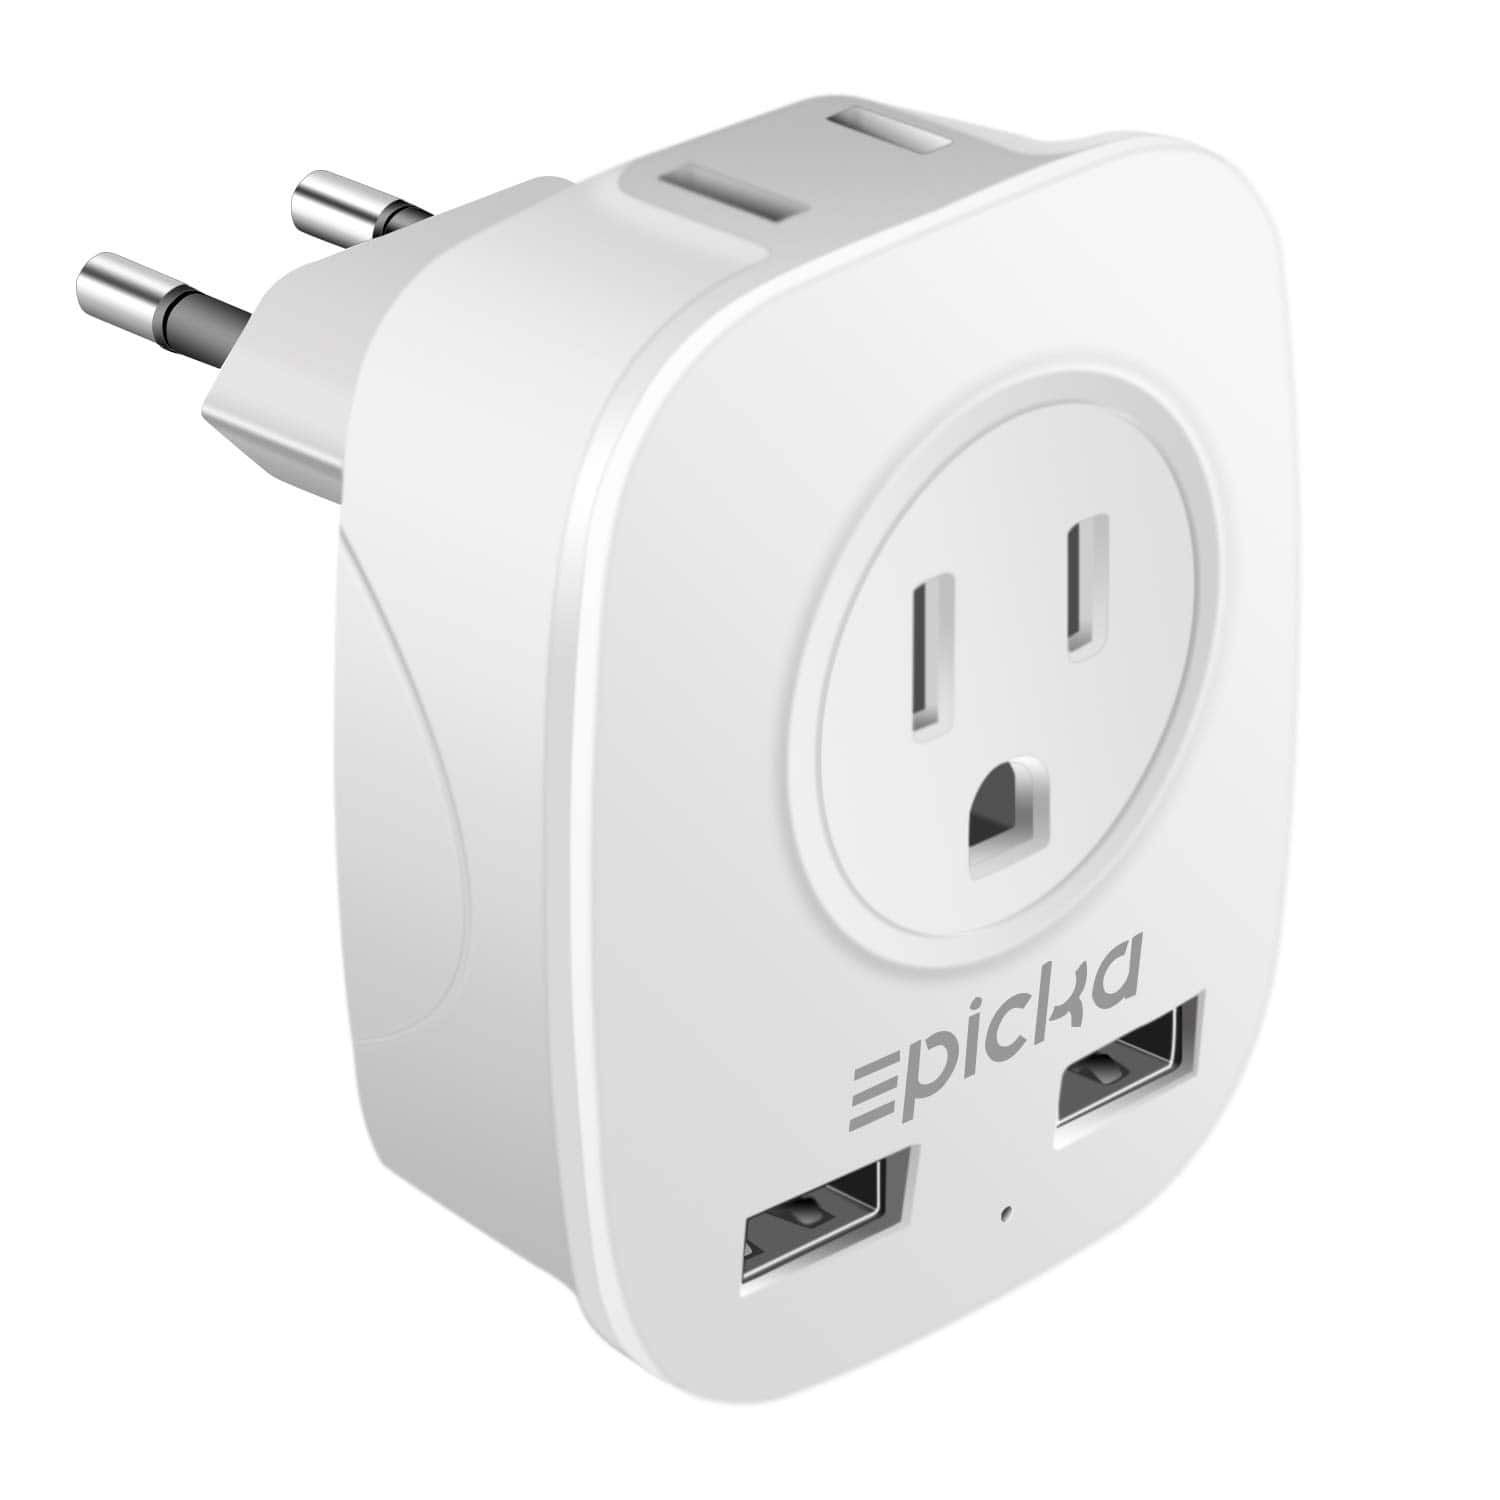 European Travel Plug Adapter - EPICKA Wall Charger Adapter with 2.4A Dual USB Charging Ports - Type C, Amazon - $4.99AC